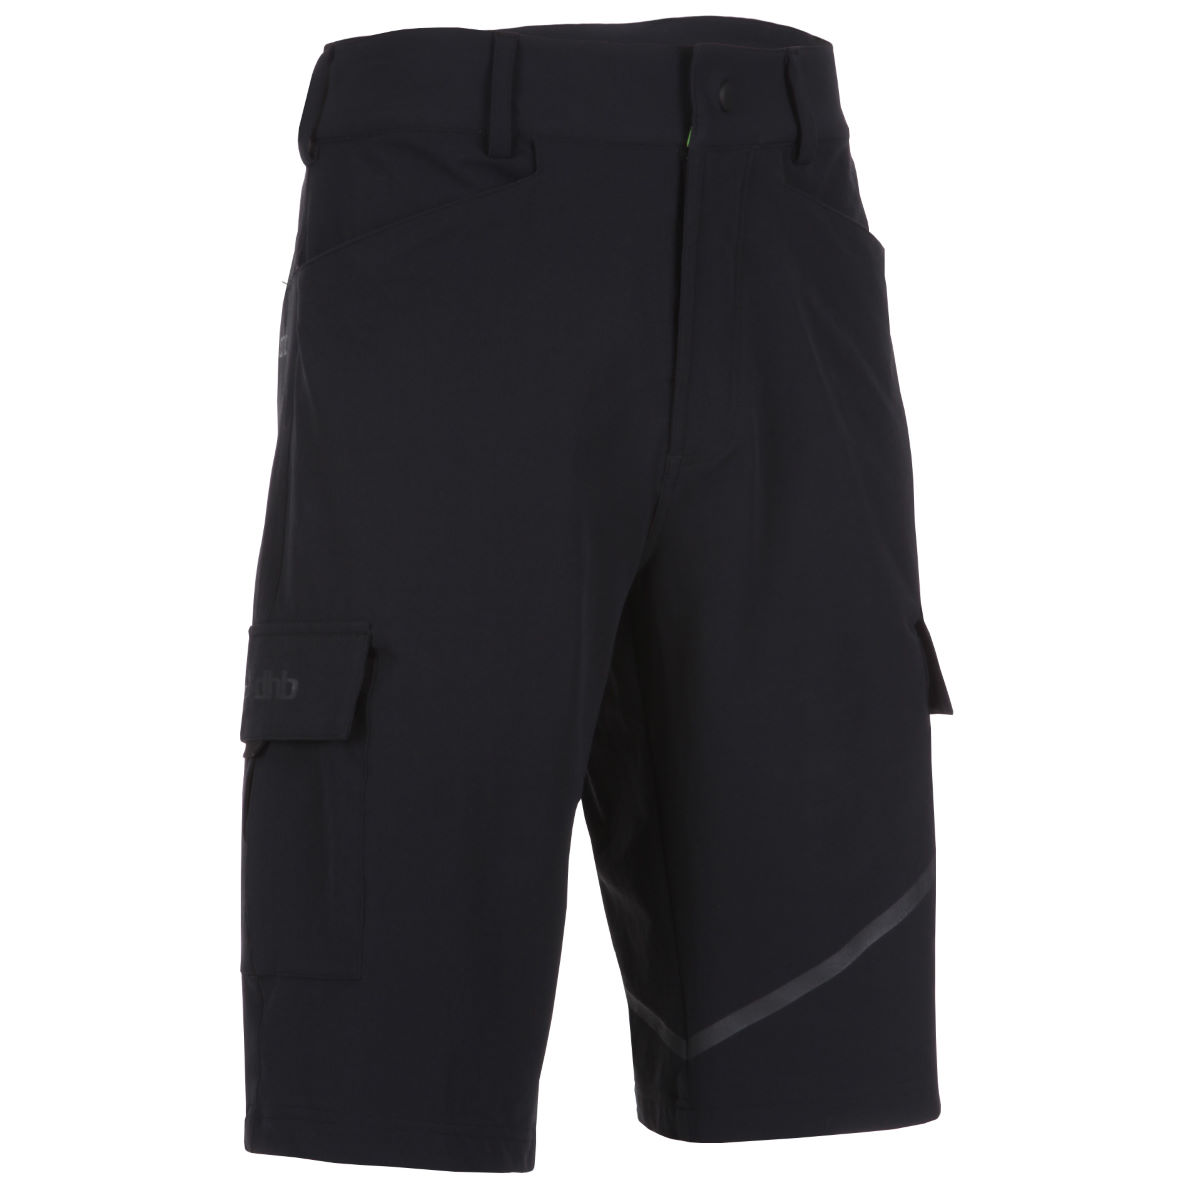 dhb Morro Baggy Short & Removeable Padded Liner